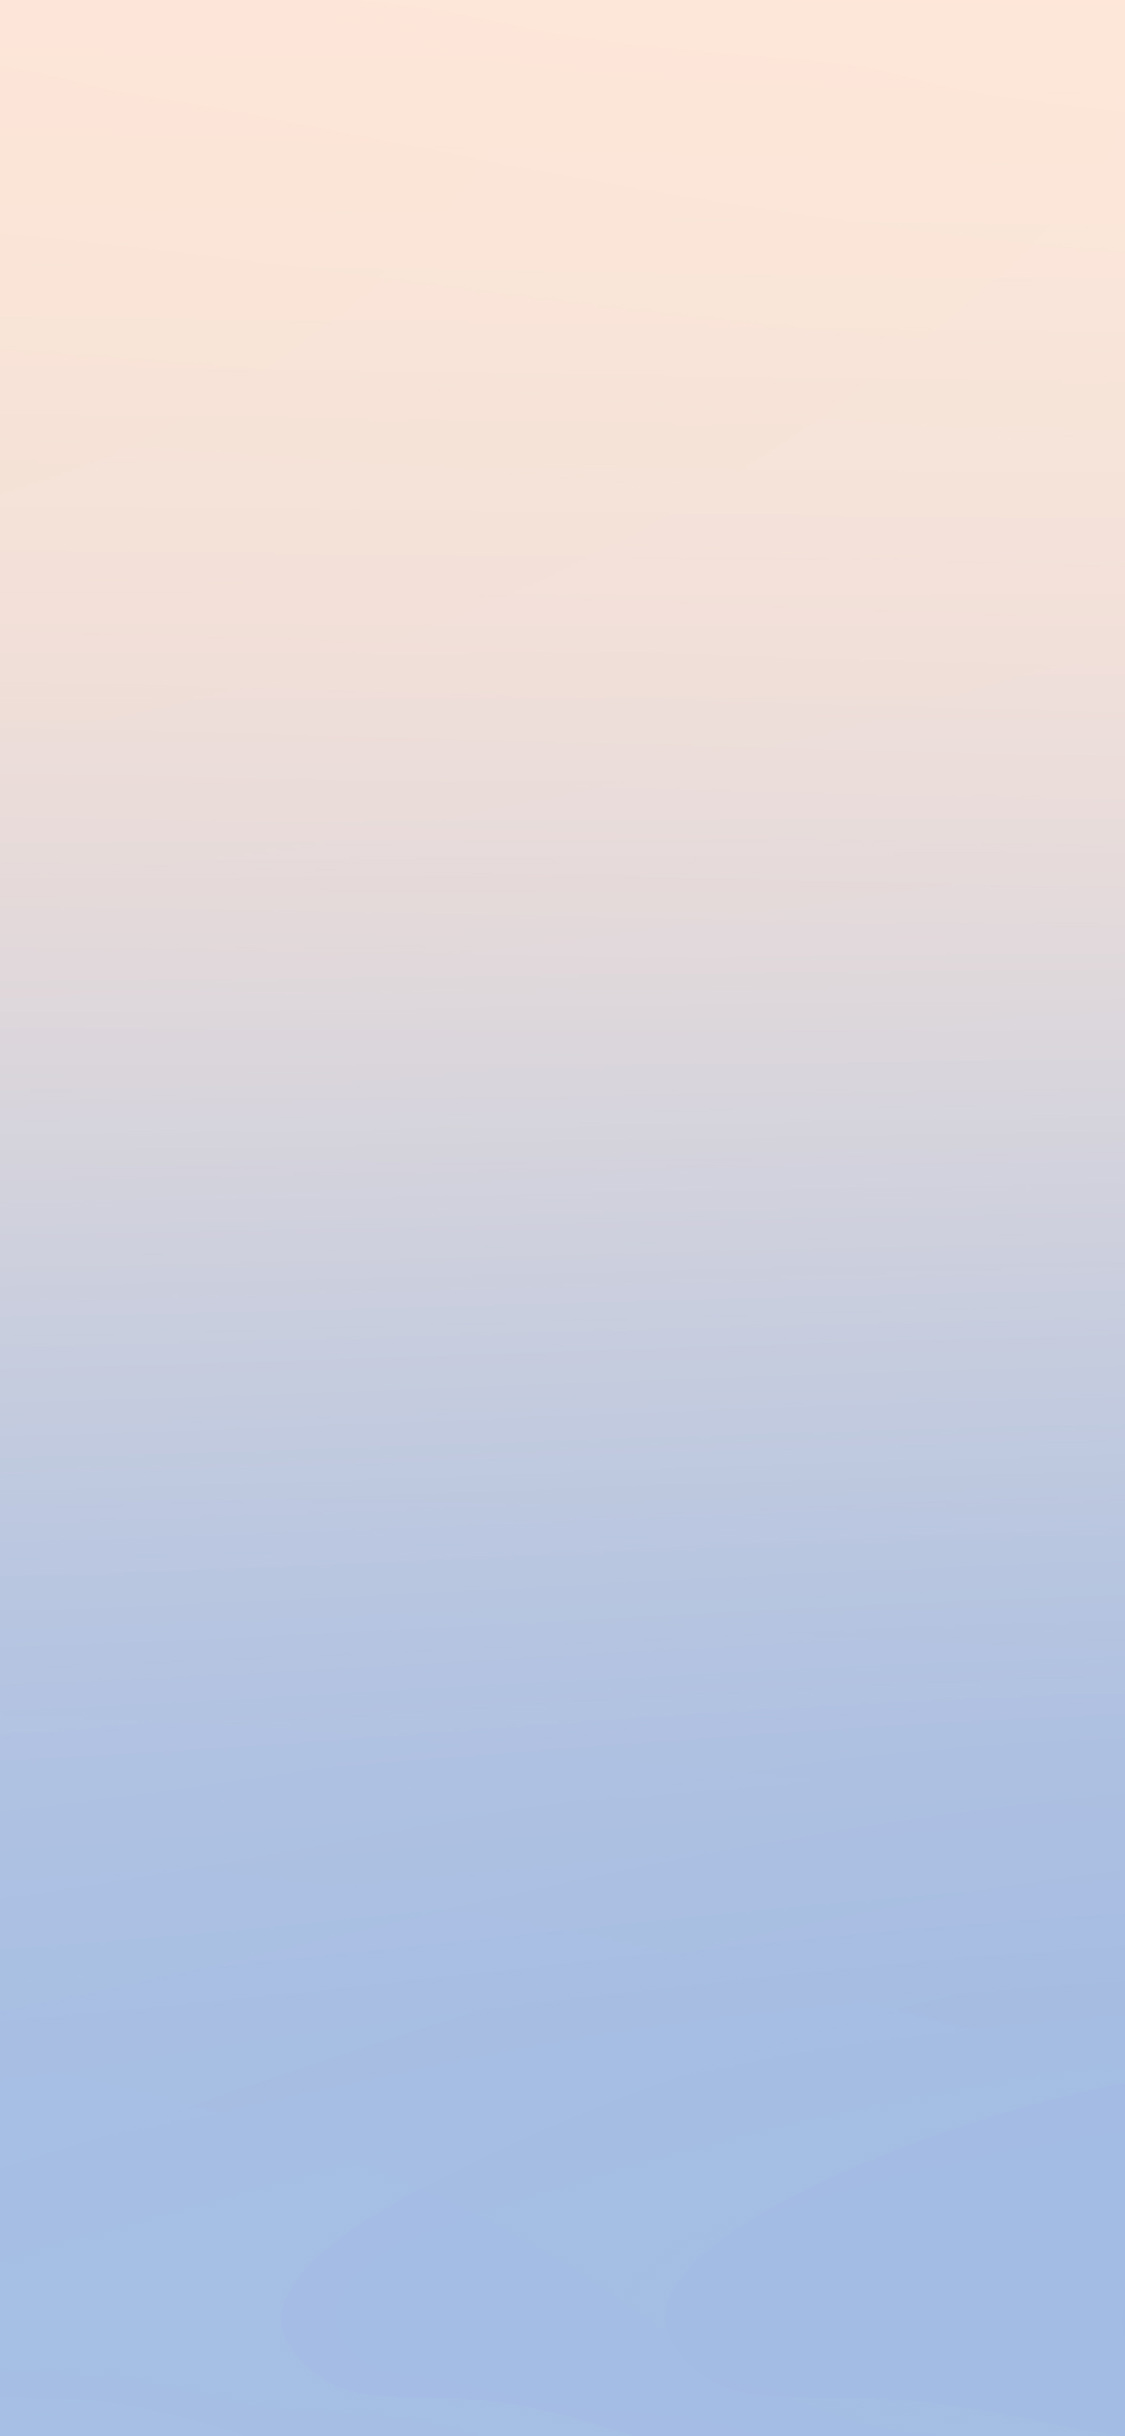 iPhoneXpapers.com-Apple-iPhone-wallpaper-sk57-white-morning-blur-gradation